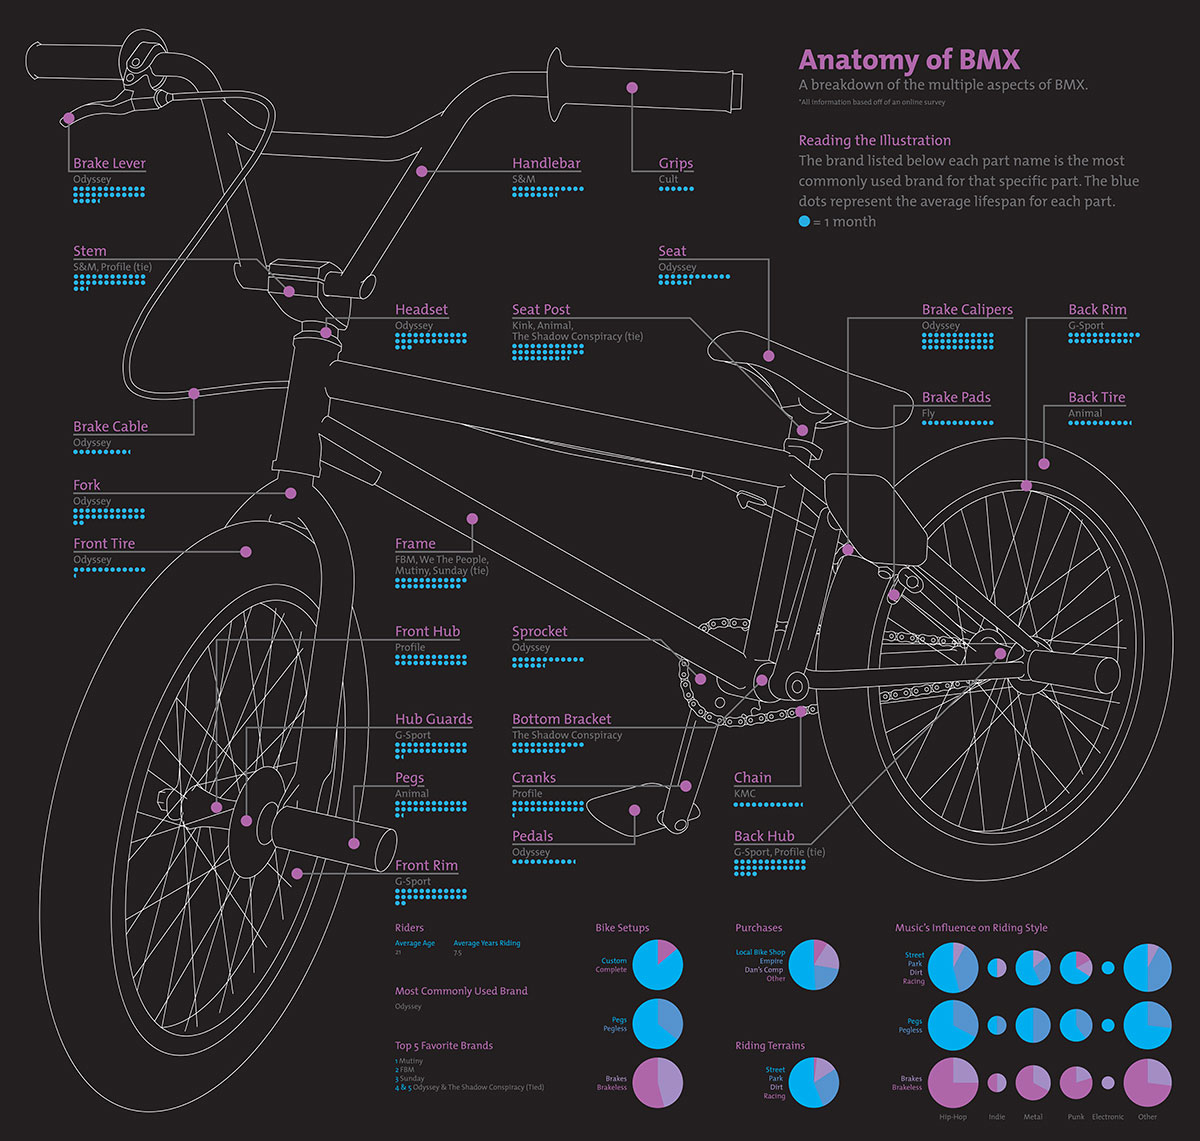 Anatomy Of Bmx Bill Frank Design Bicycle Diagram Bike Where Most Parts Are Purchased The Common Brand Used For Each Part Way Bikes Set Up Preferred Riding Terrain And Influence